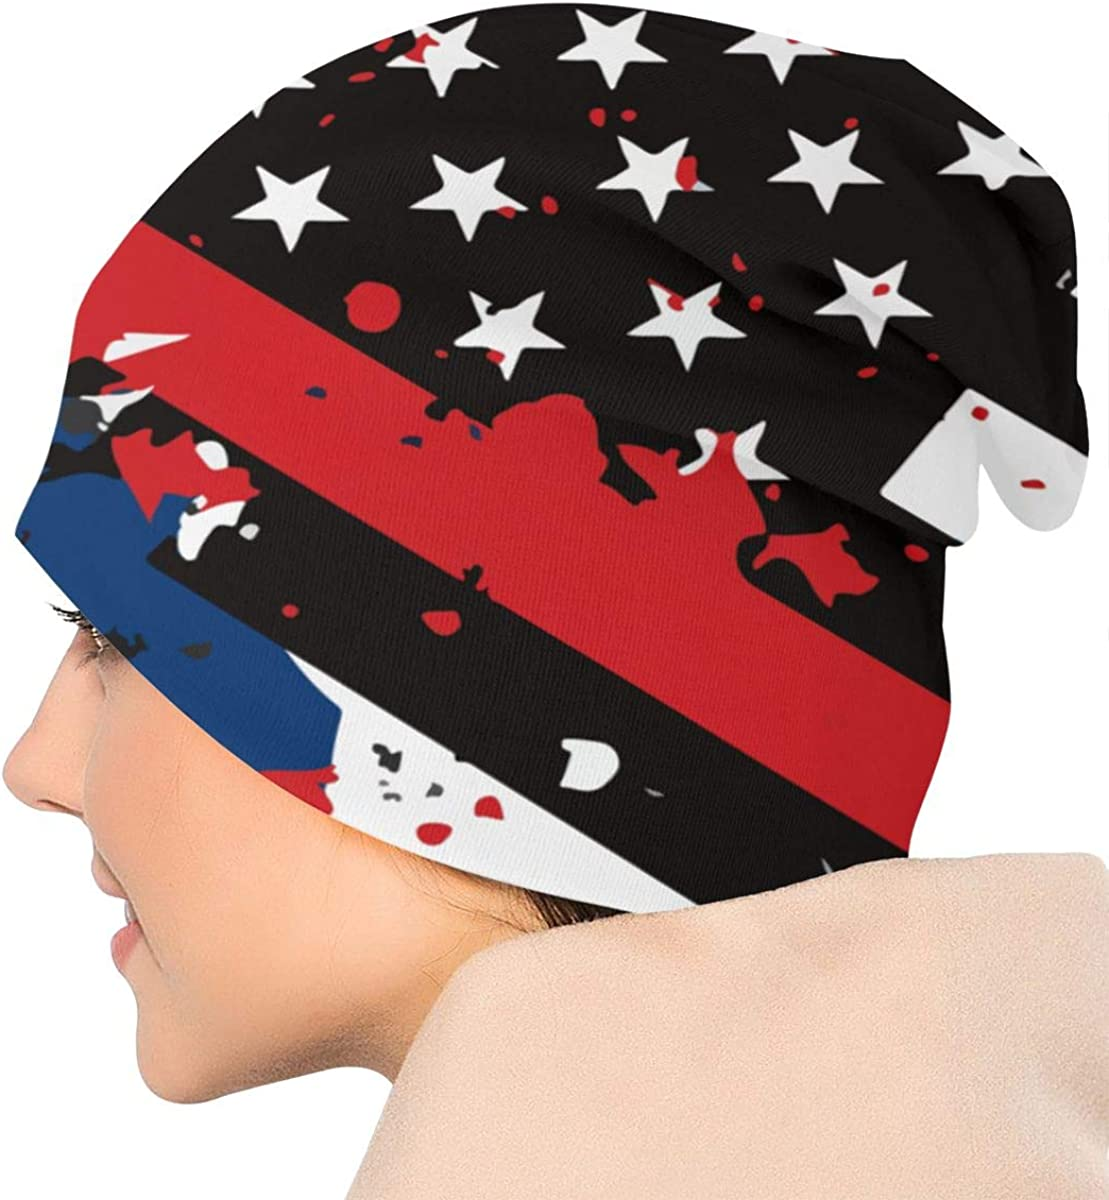 Maine Thin Red Line Flag USA Thin Baggy Slouchy Knit Beanie Hat Hip-hop Skull Cap for Mens and Womens